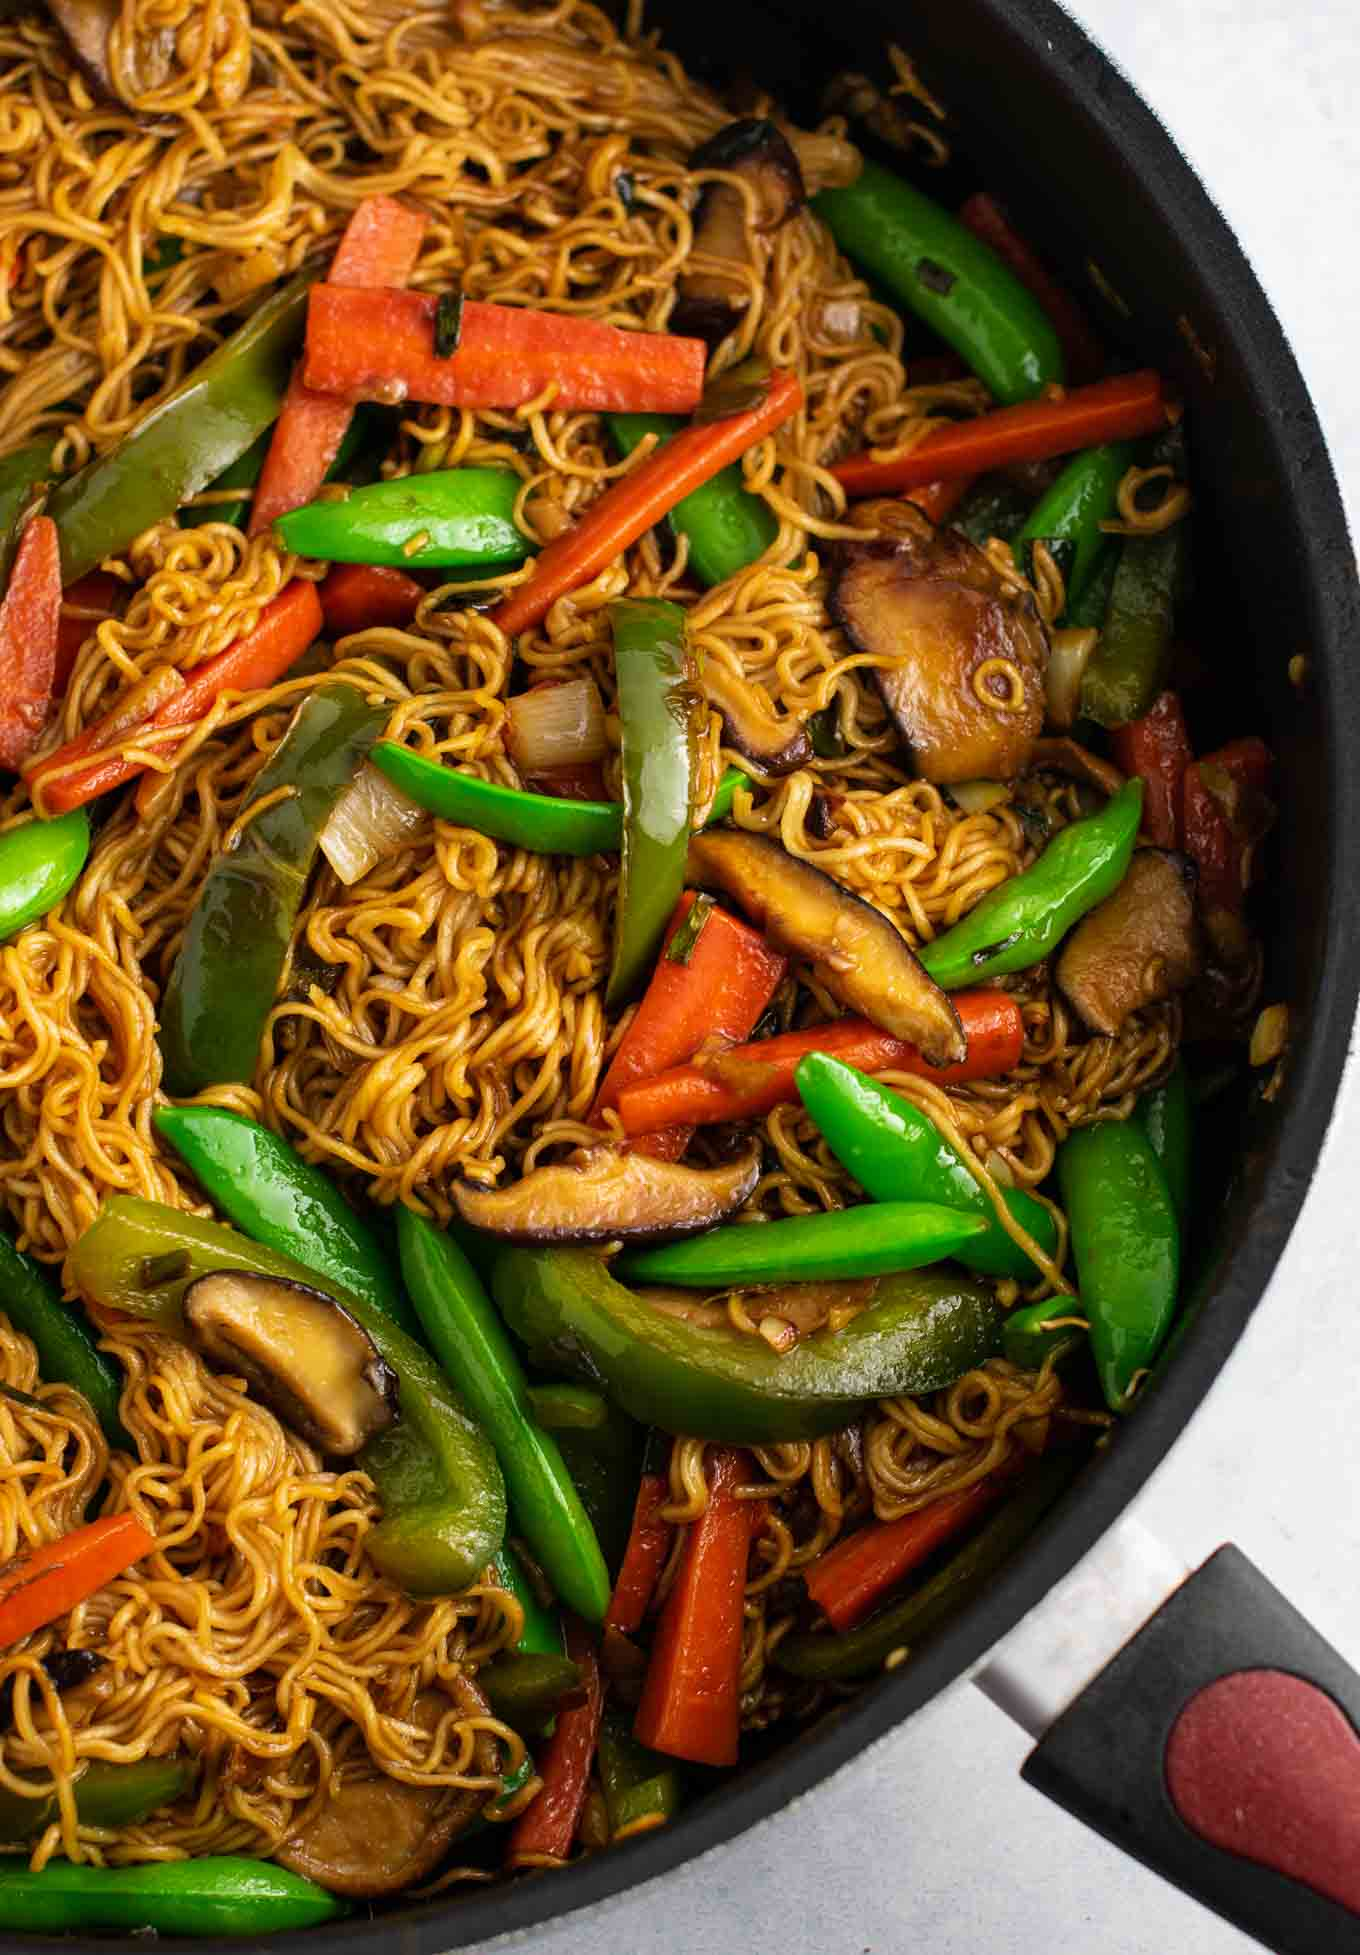 Easy stir fry dinner with ramen noodles